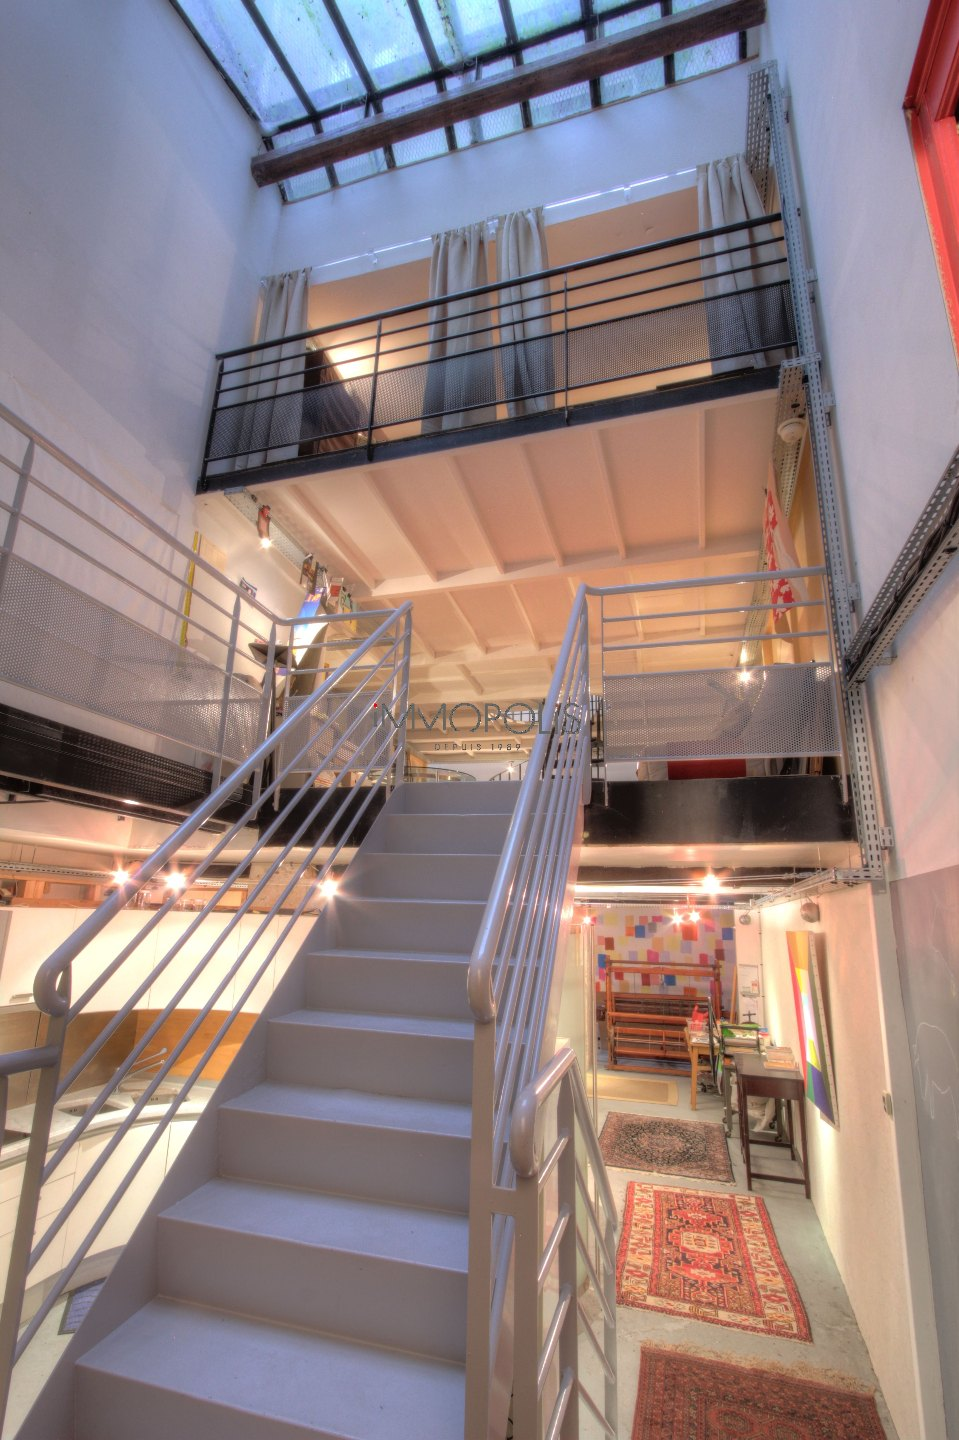 Totally atypical LOFT / ARTIST WORKSHOP, in OPEN-SPACE on three levels with TWO GLASS ROOMS overlooking a quiet courtyard! 3